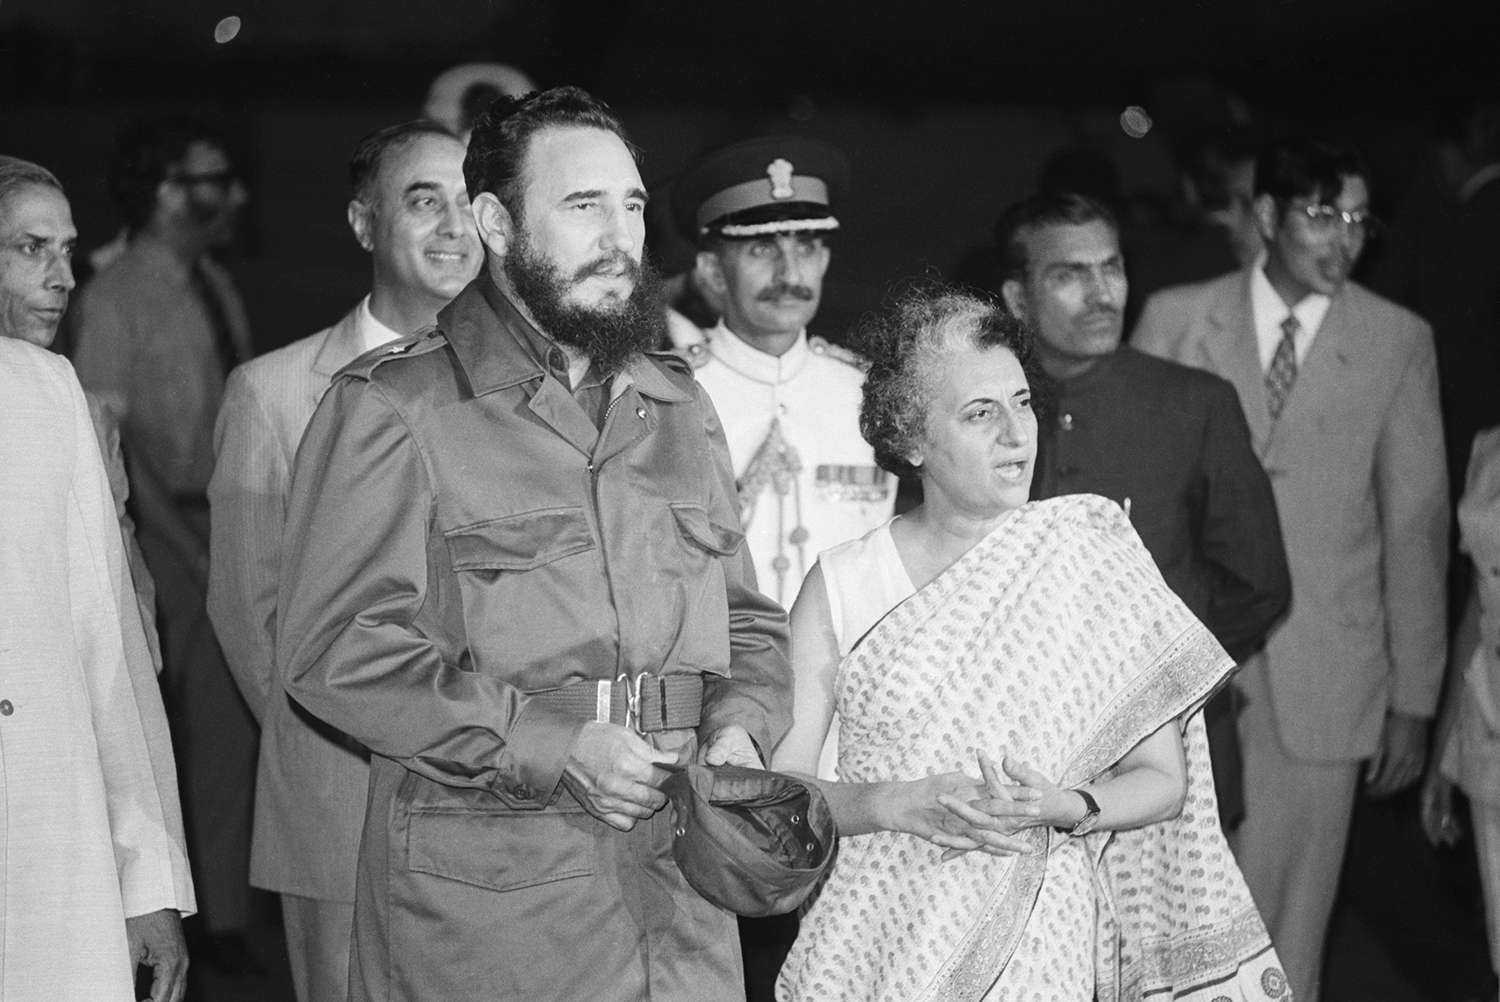 Fidel Castro is met by Indira Gandhi on his arrival at the airport in India on Sept. 11, 1973.